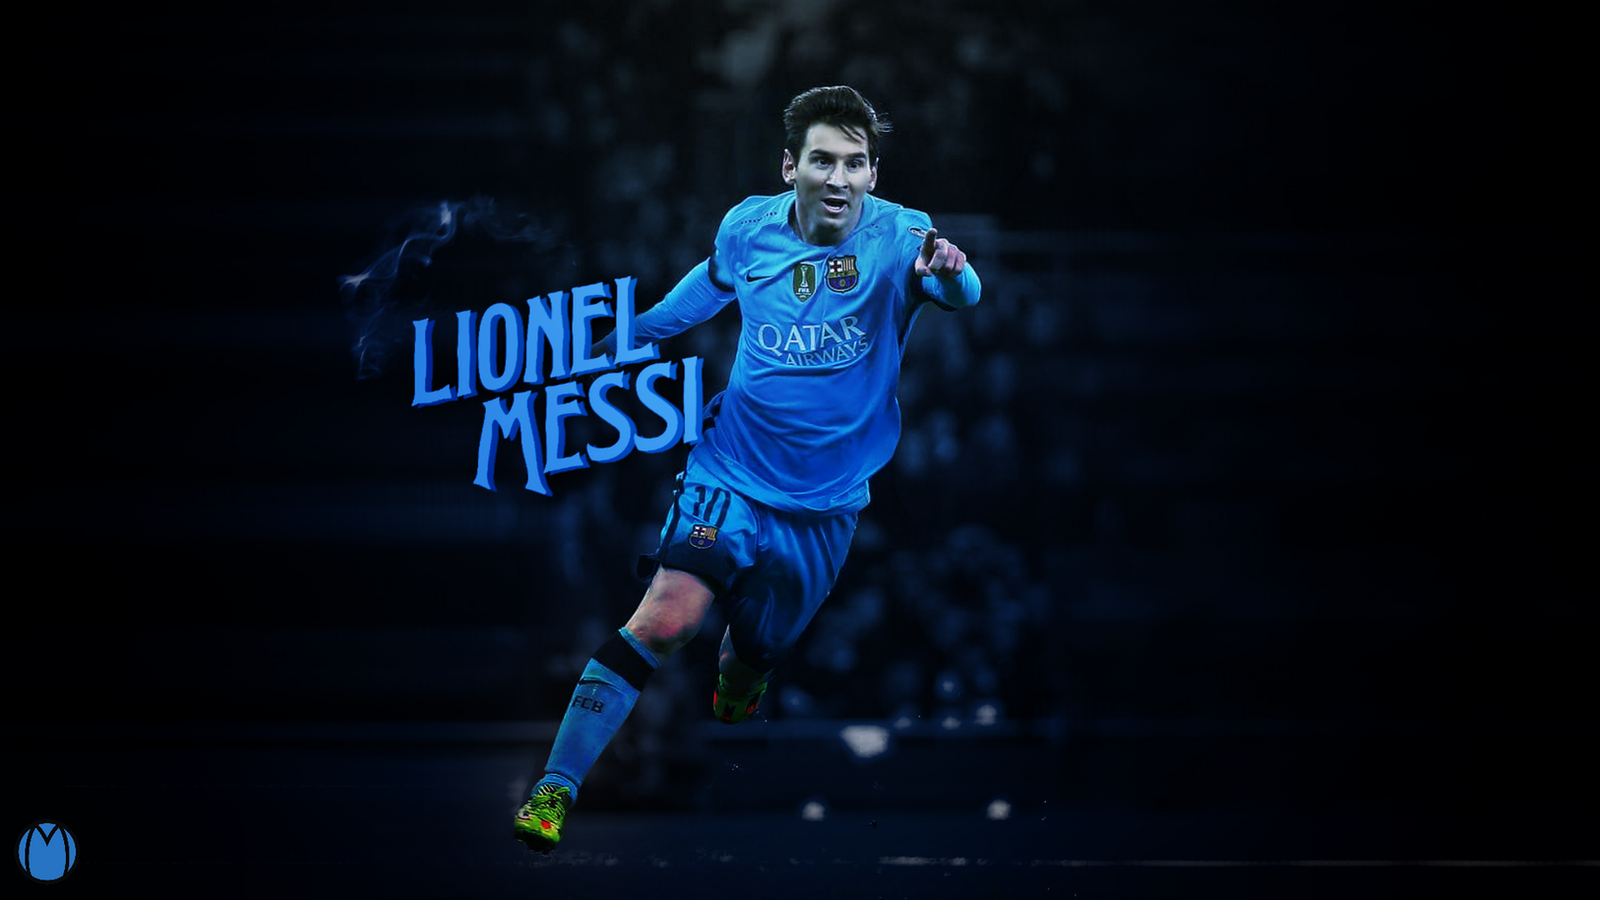 Messi 2017 wallpaper google music ios icon images gold for New design wallpaper 2016